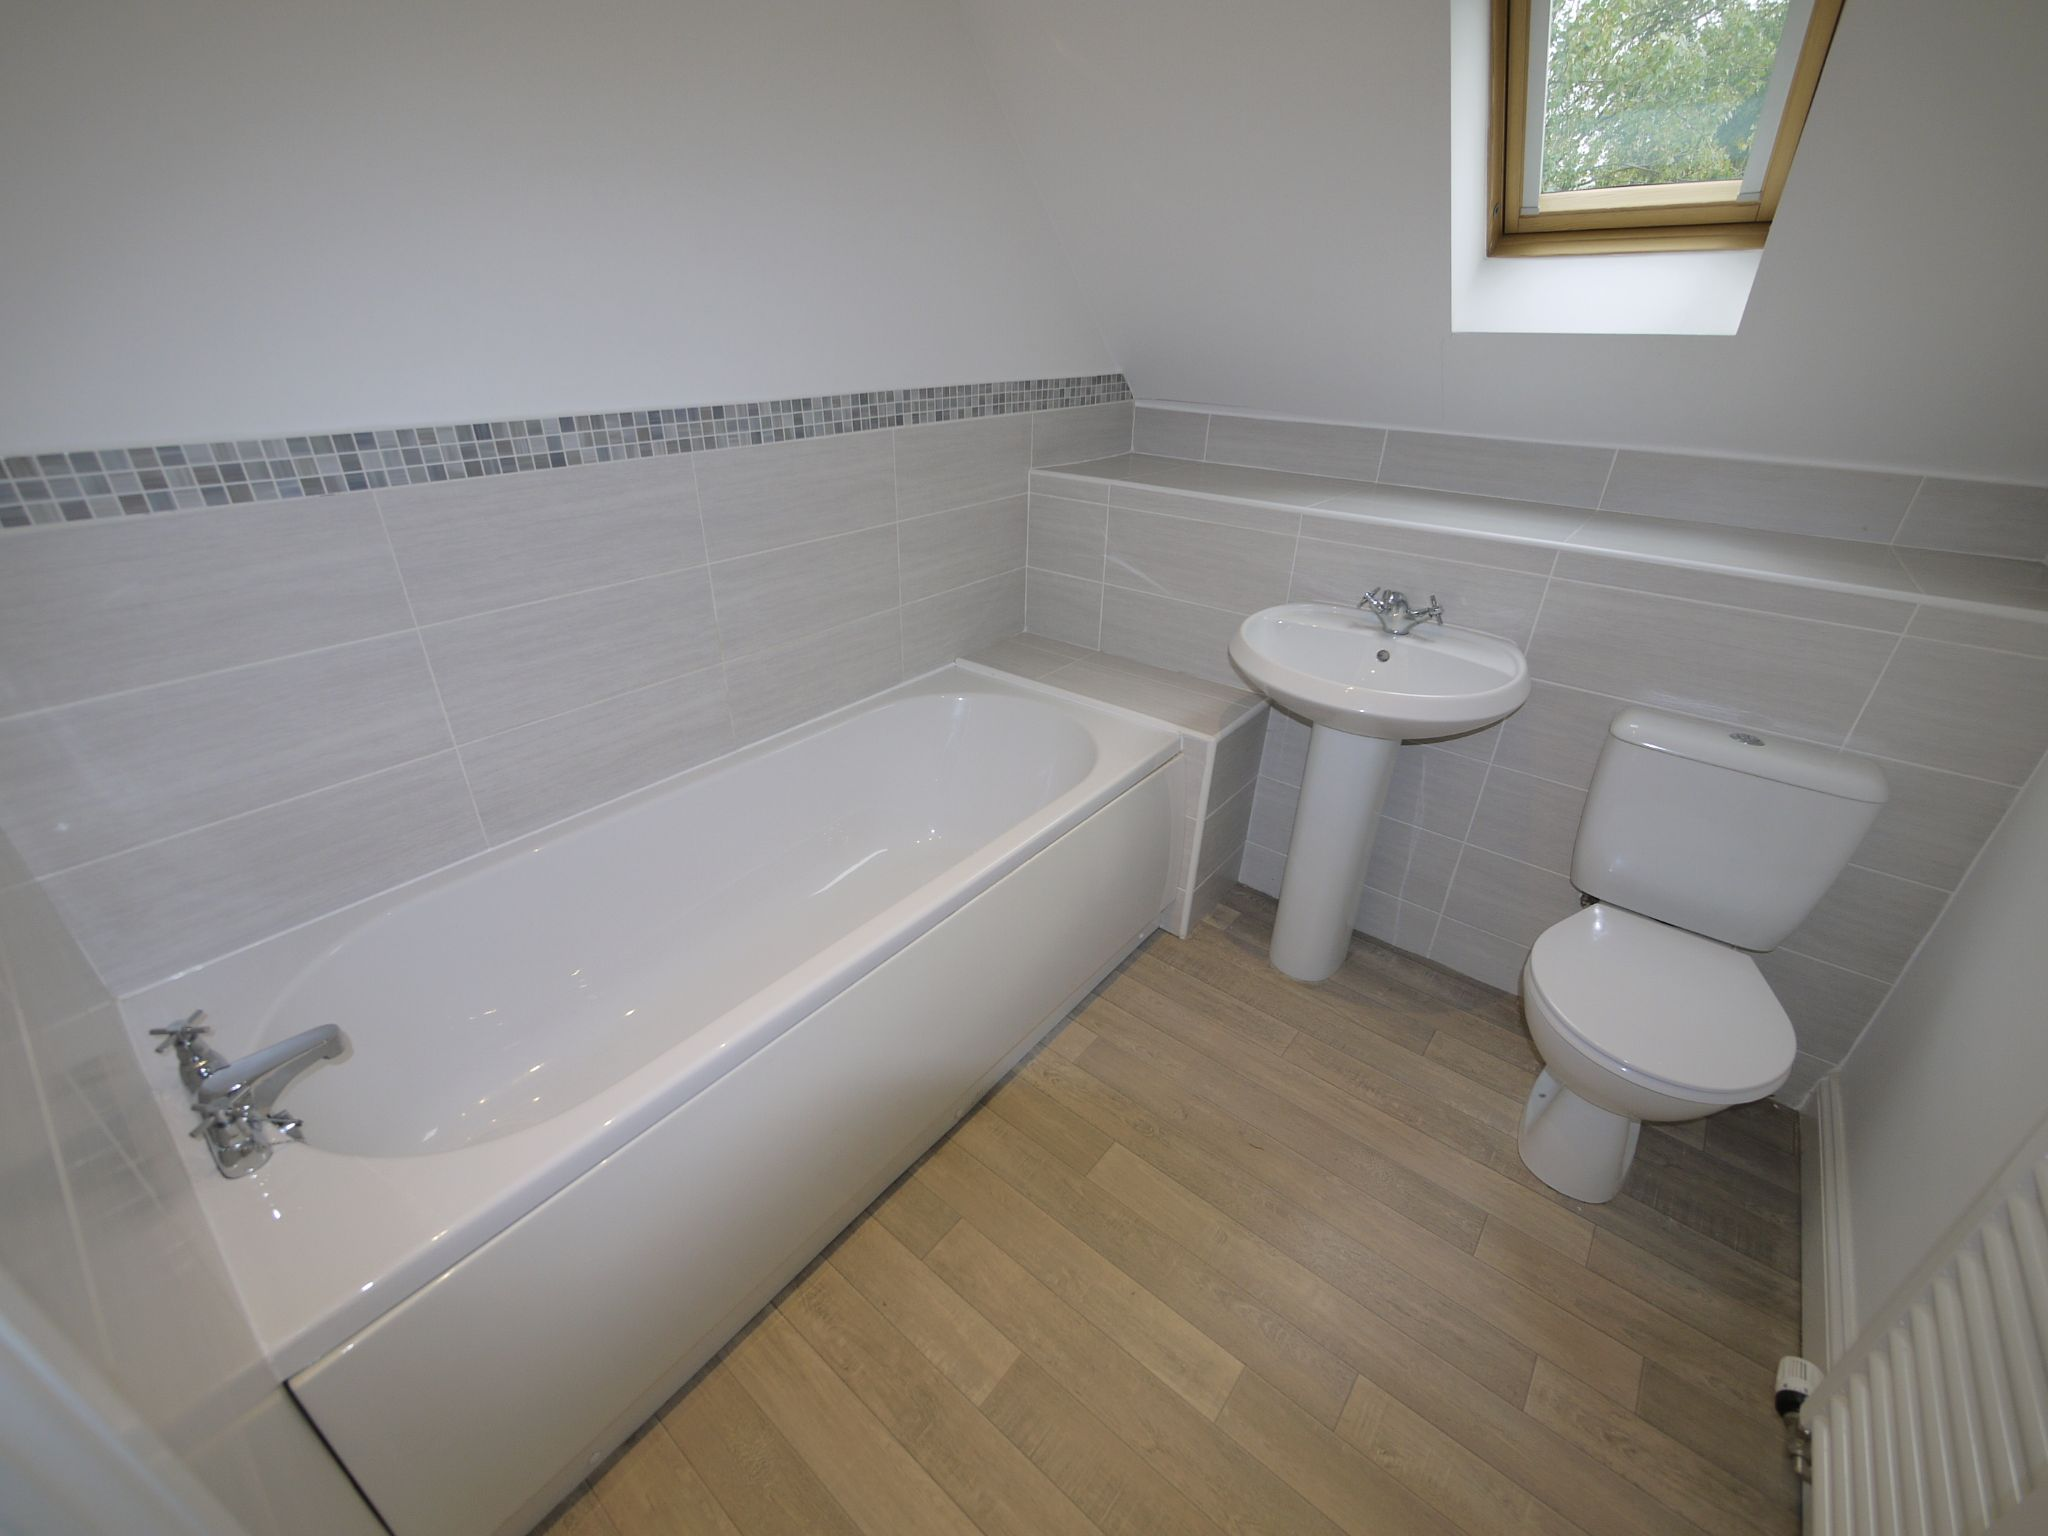 3 bedroom town house SSTC in Mirfield - Photograph 5.